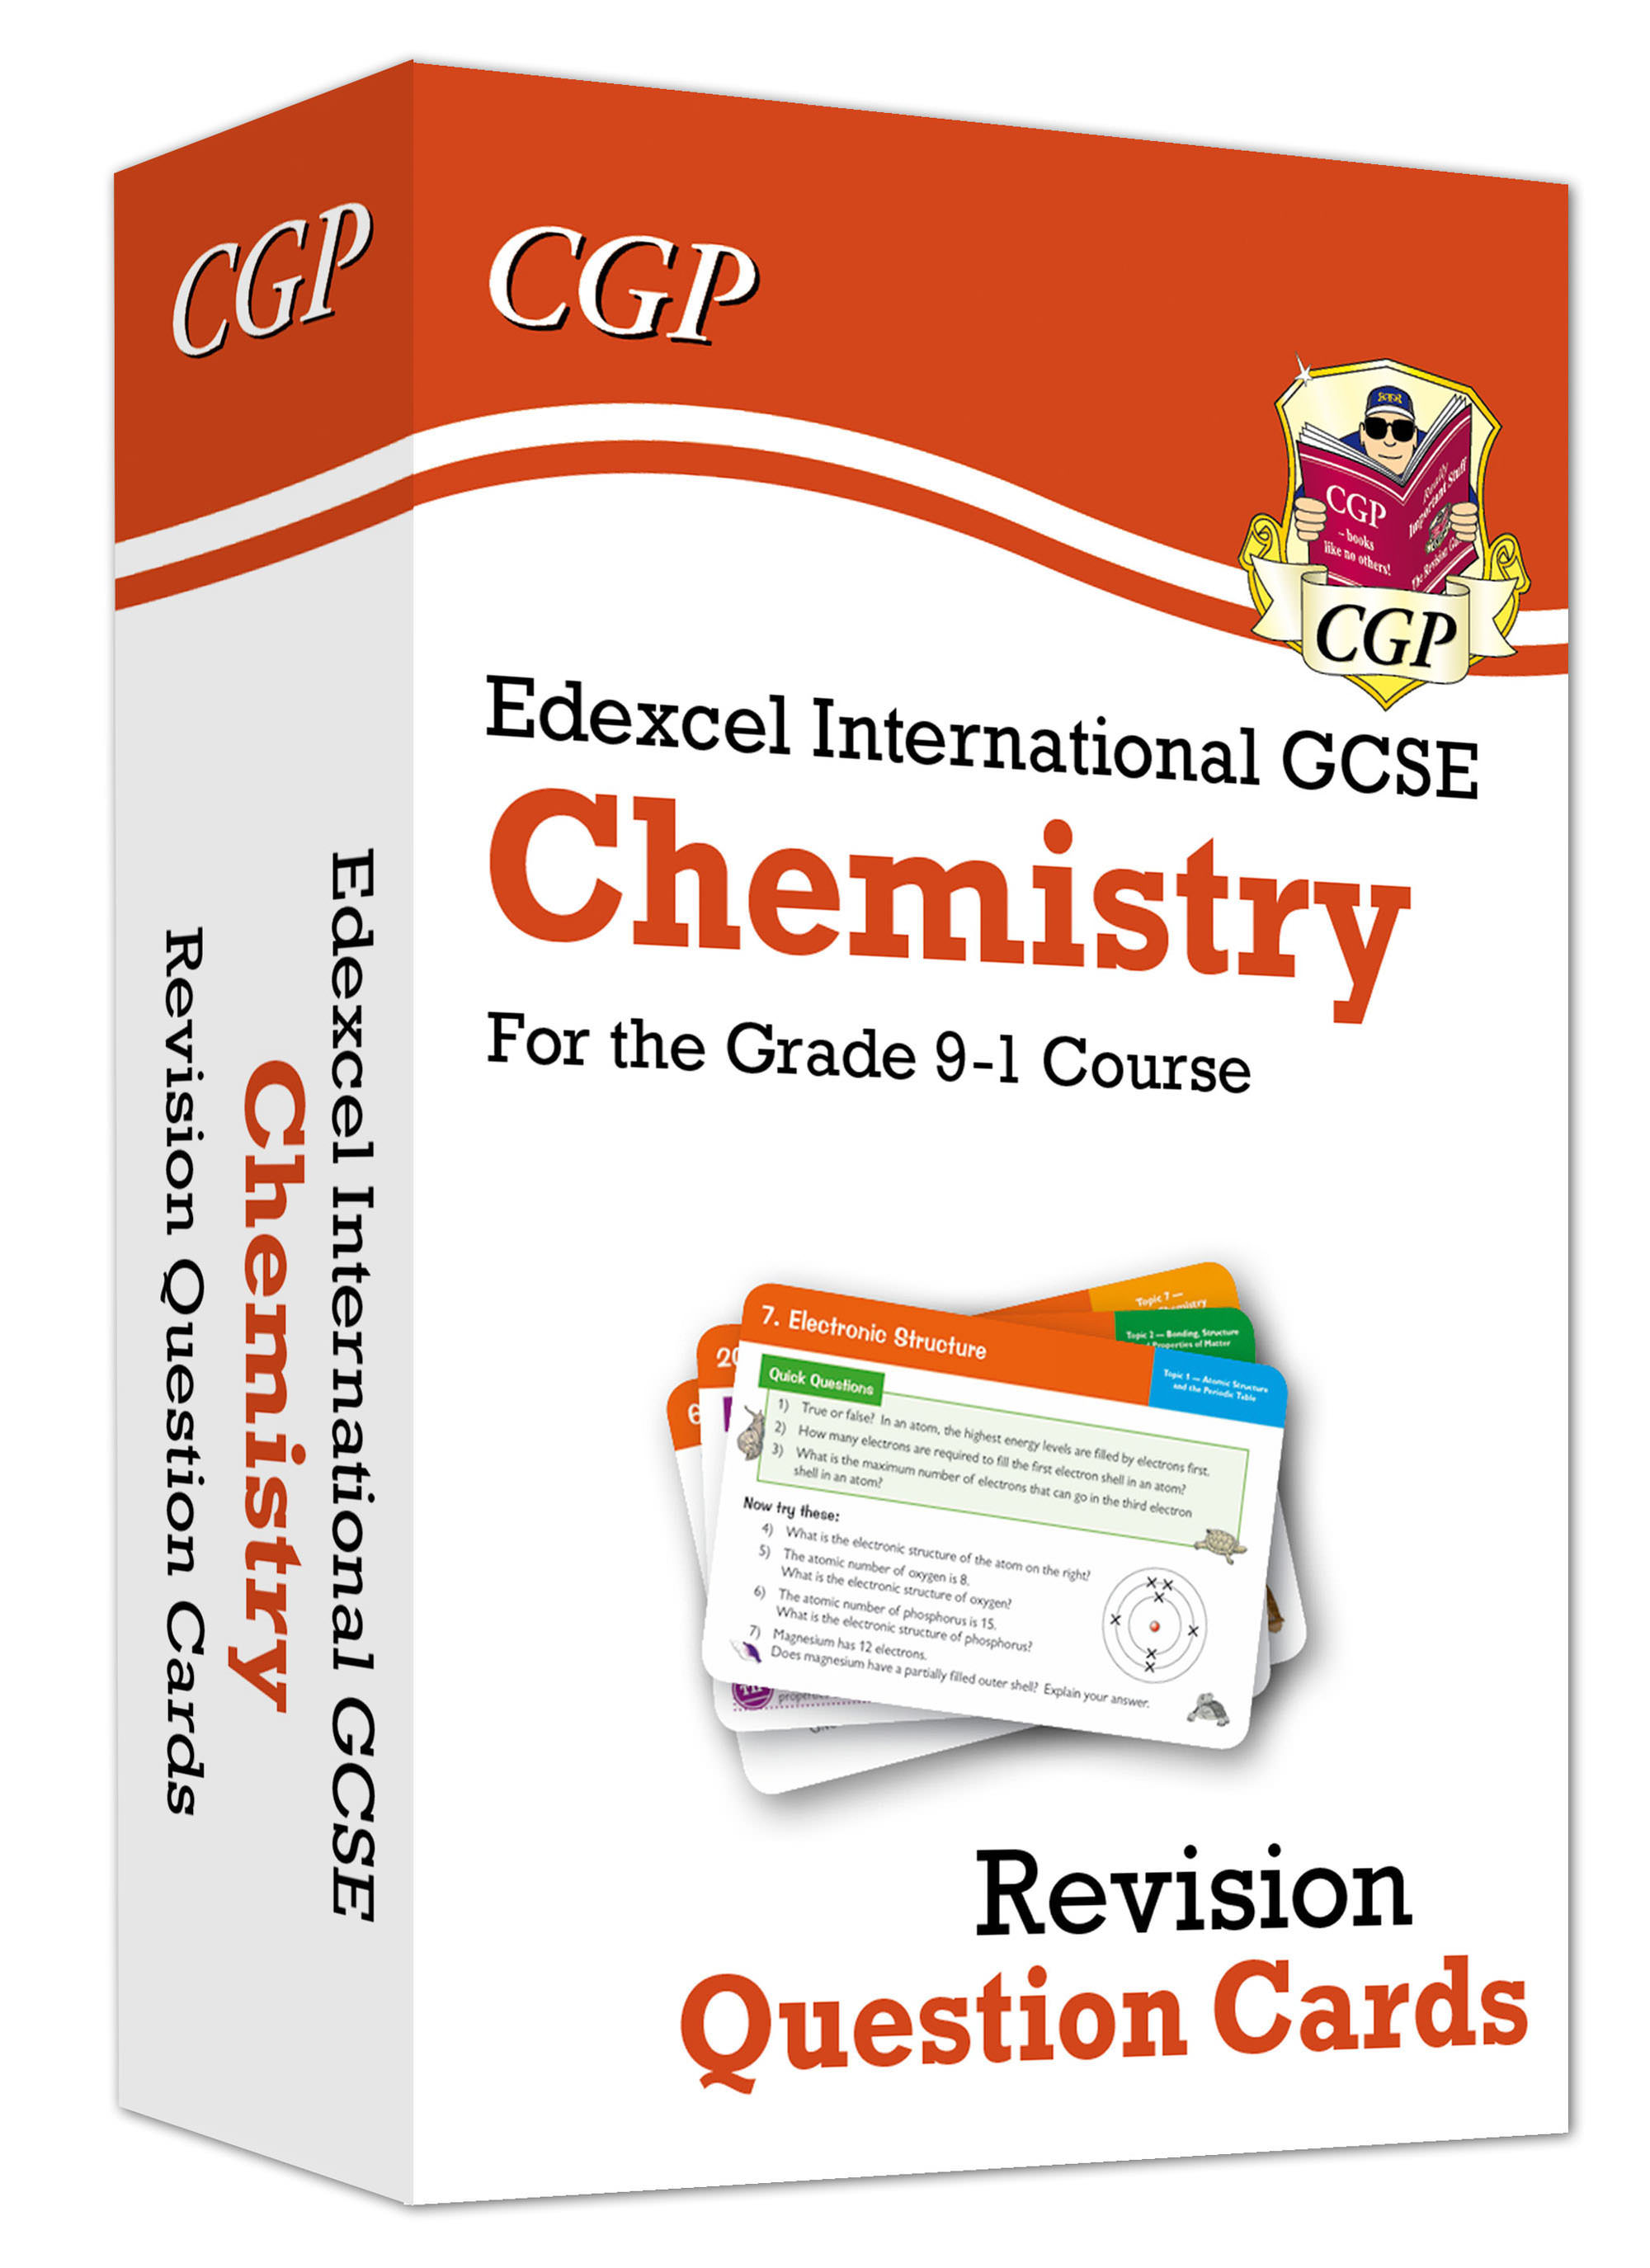 CEFI41D - New Grade 9-1 Edexcel International GCSE Chemistry: Revision Question Cards Online Edition